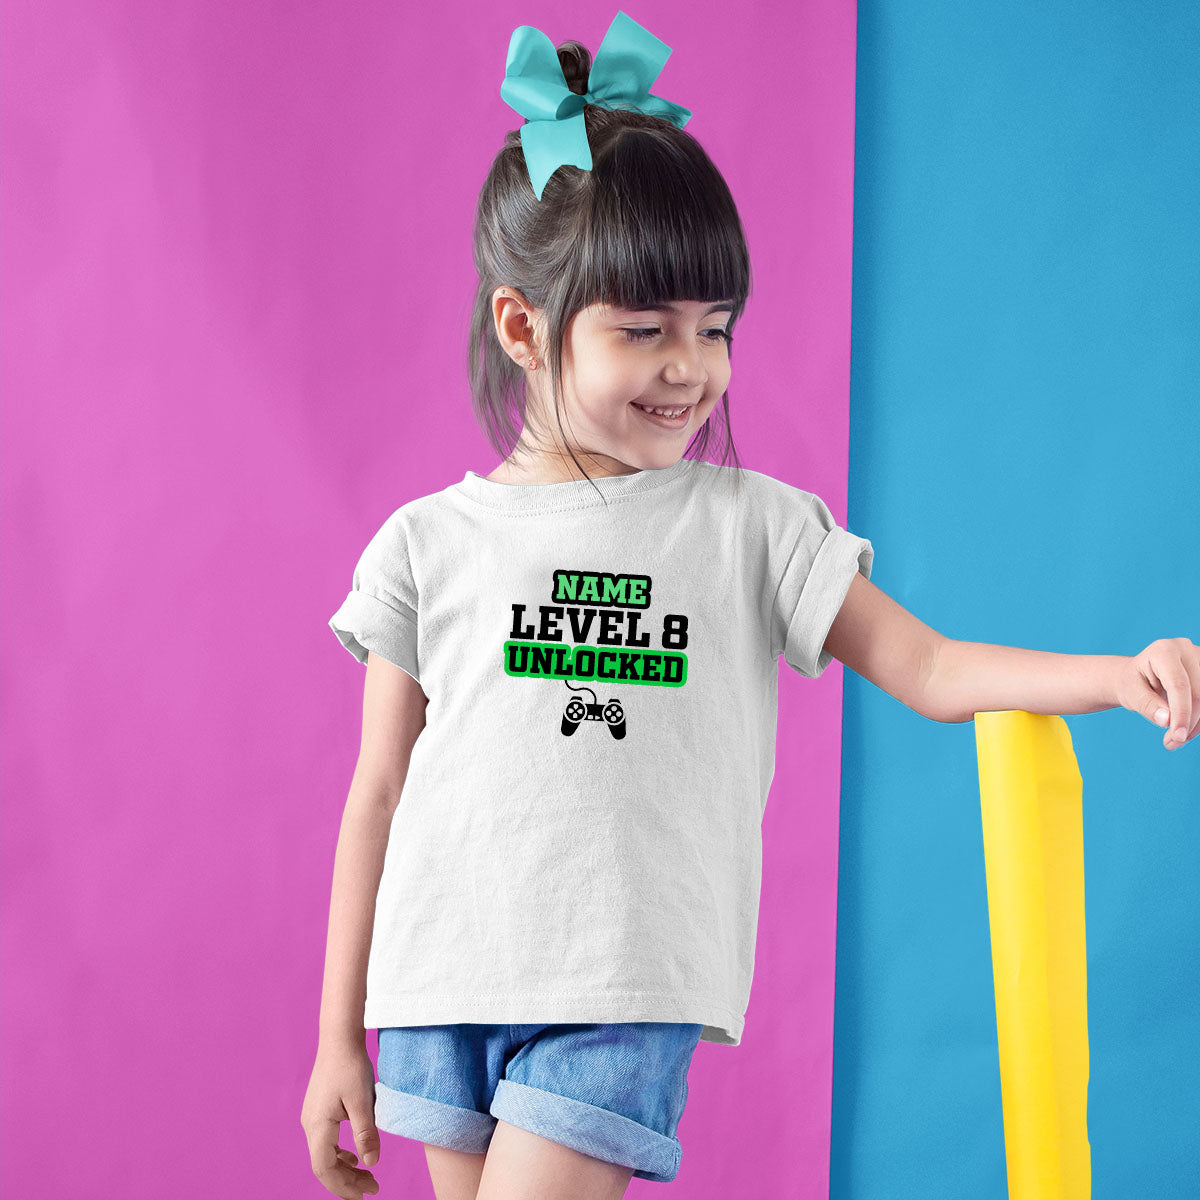 Sprinklecart Level 8 Unlocked Birthday T Shirt 8th Birthday Dress for Your Little One